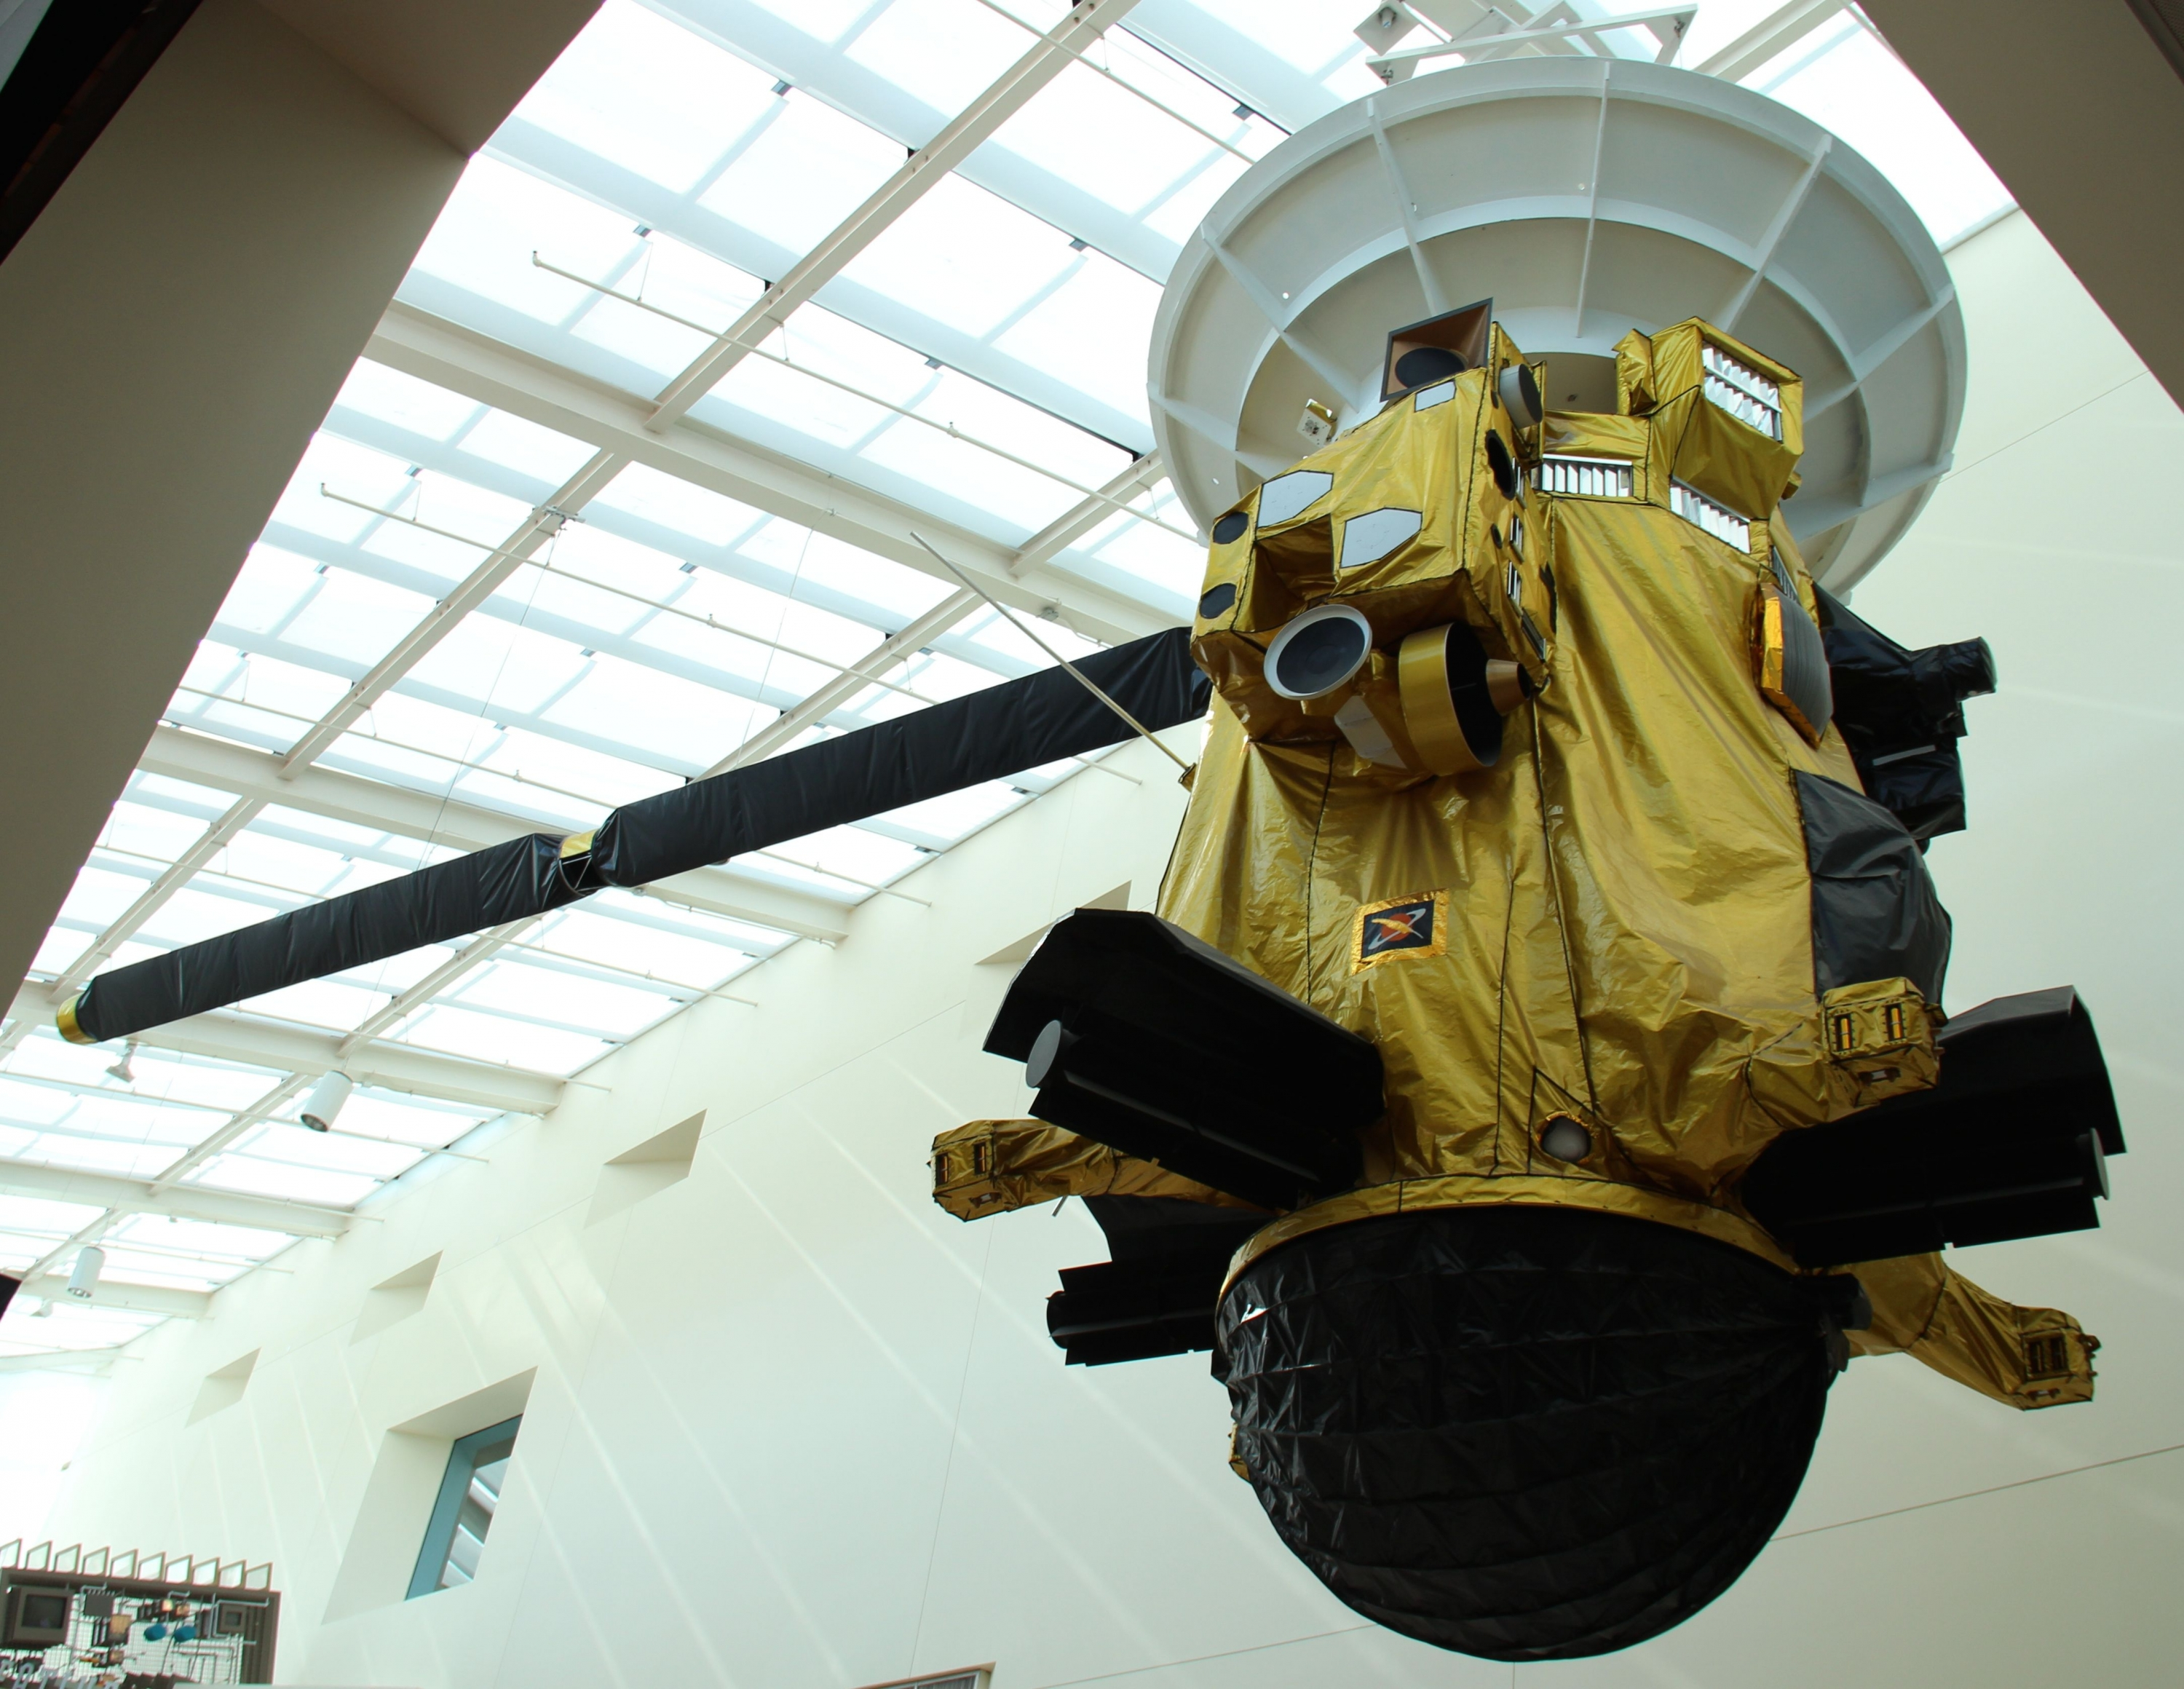 Cassini probe engineering model on display at the California Science Center